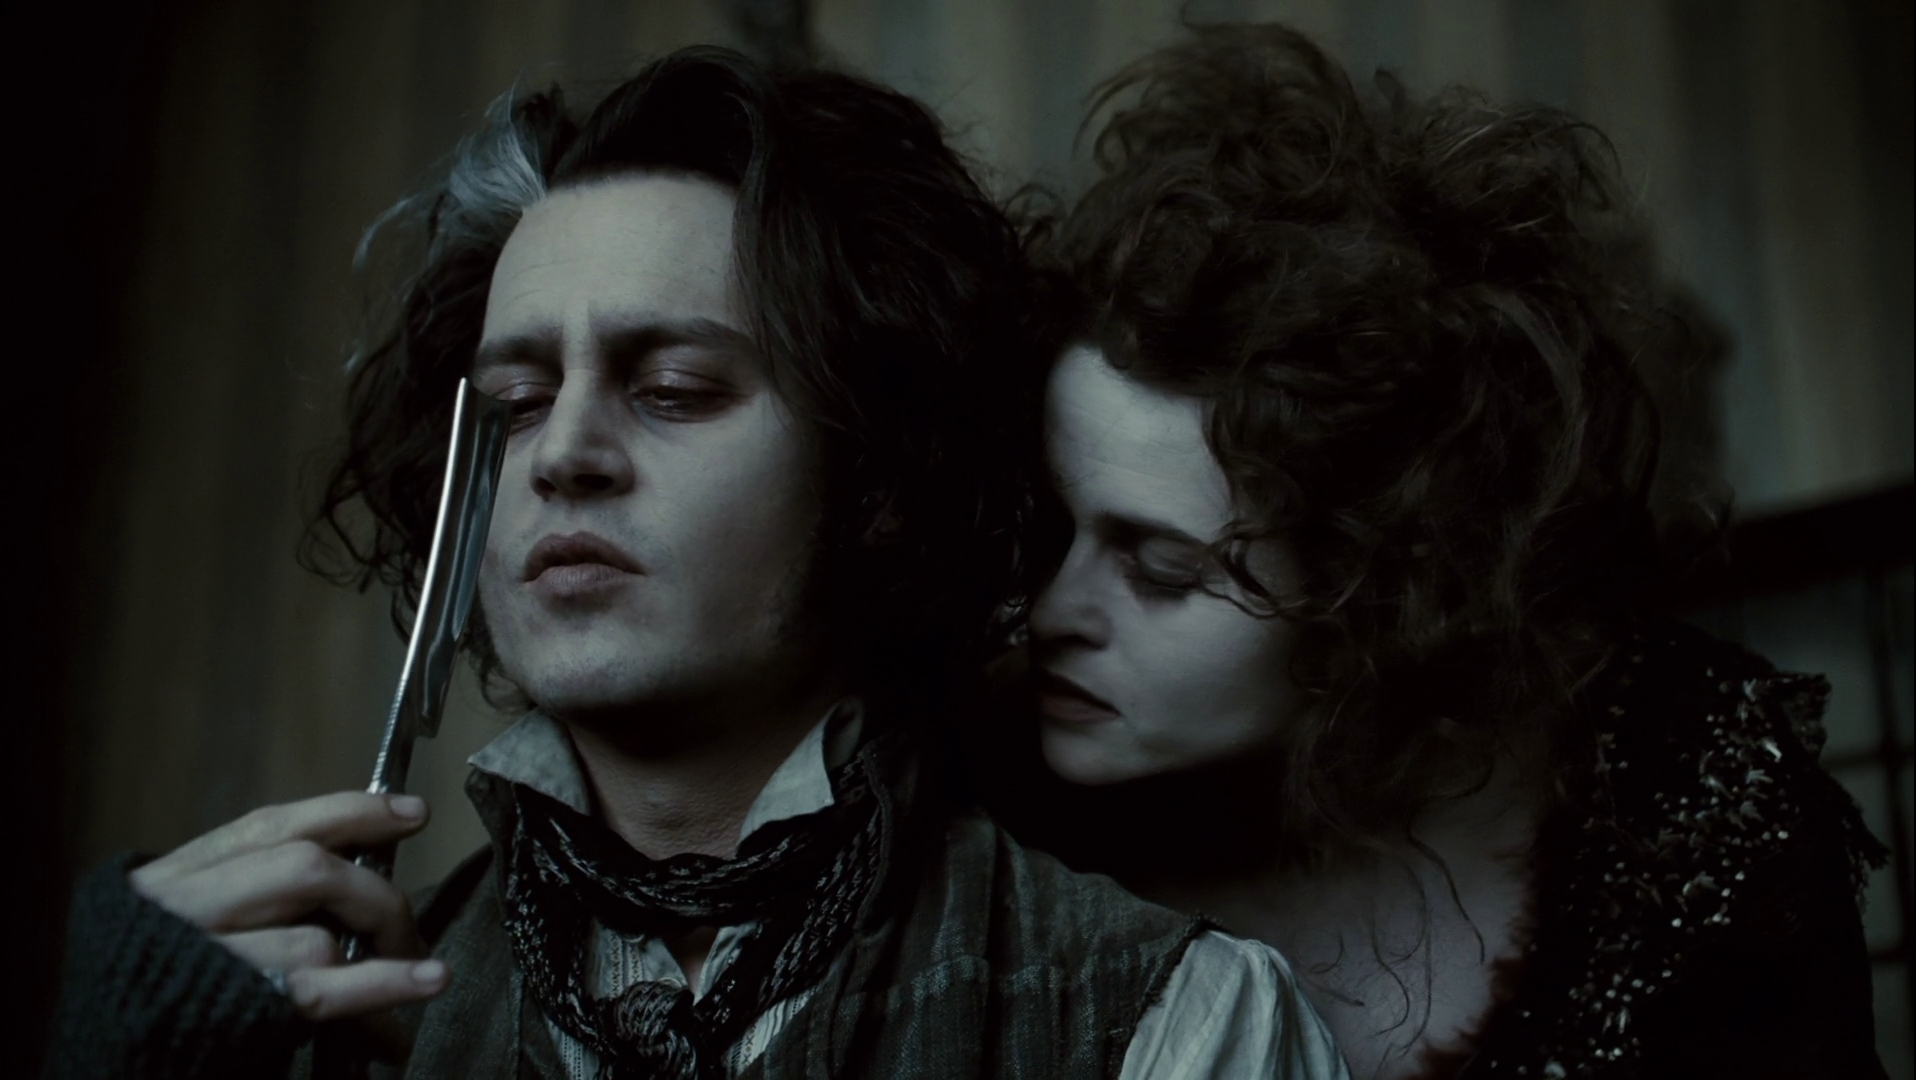 Tim Burton regulars Johnny Depp and Helena Bonham-Carter rejoin forces in Sweeney Todd: The Demon Barber of Fleet Street, a story about a barber that goes on a rampage after being convicted for a crime he didn't commit. (Photo: Promotion)